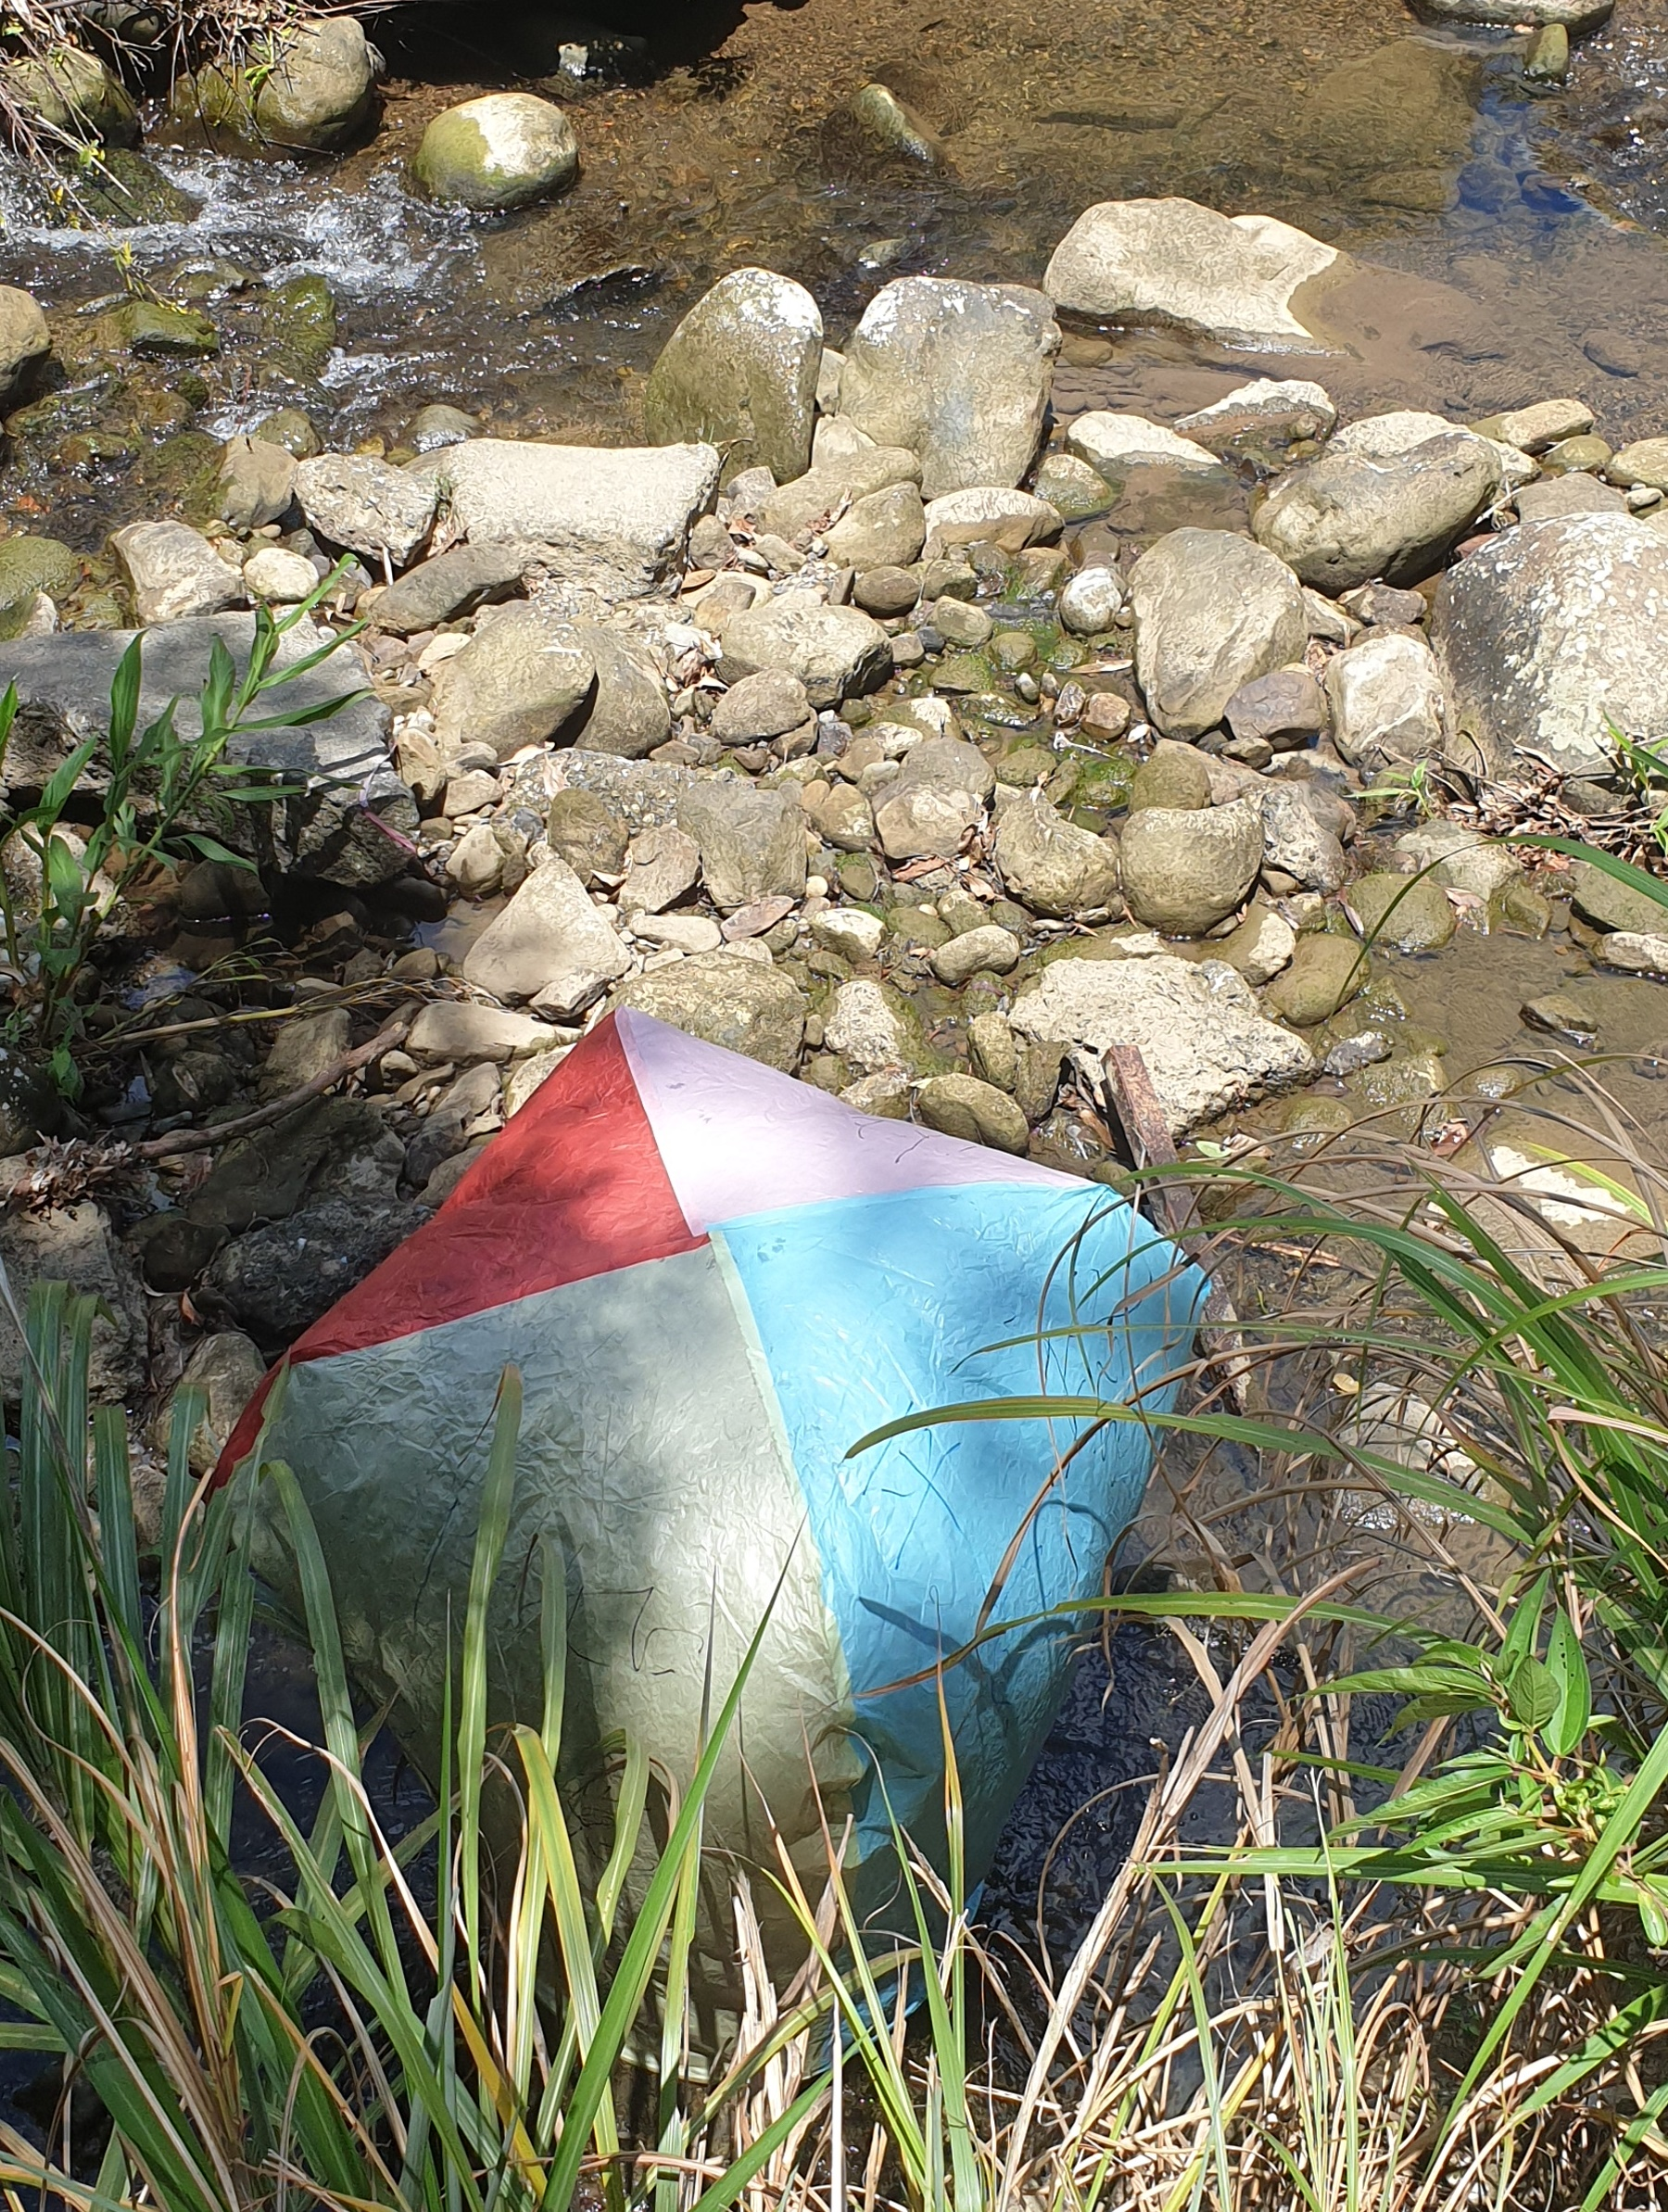 This lantern has ended up in a river!